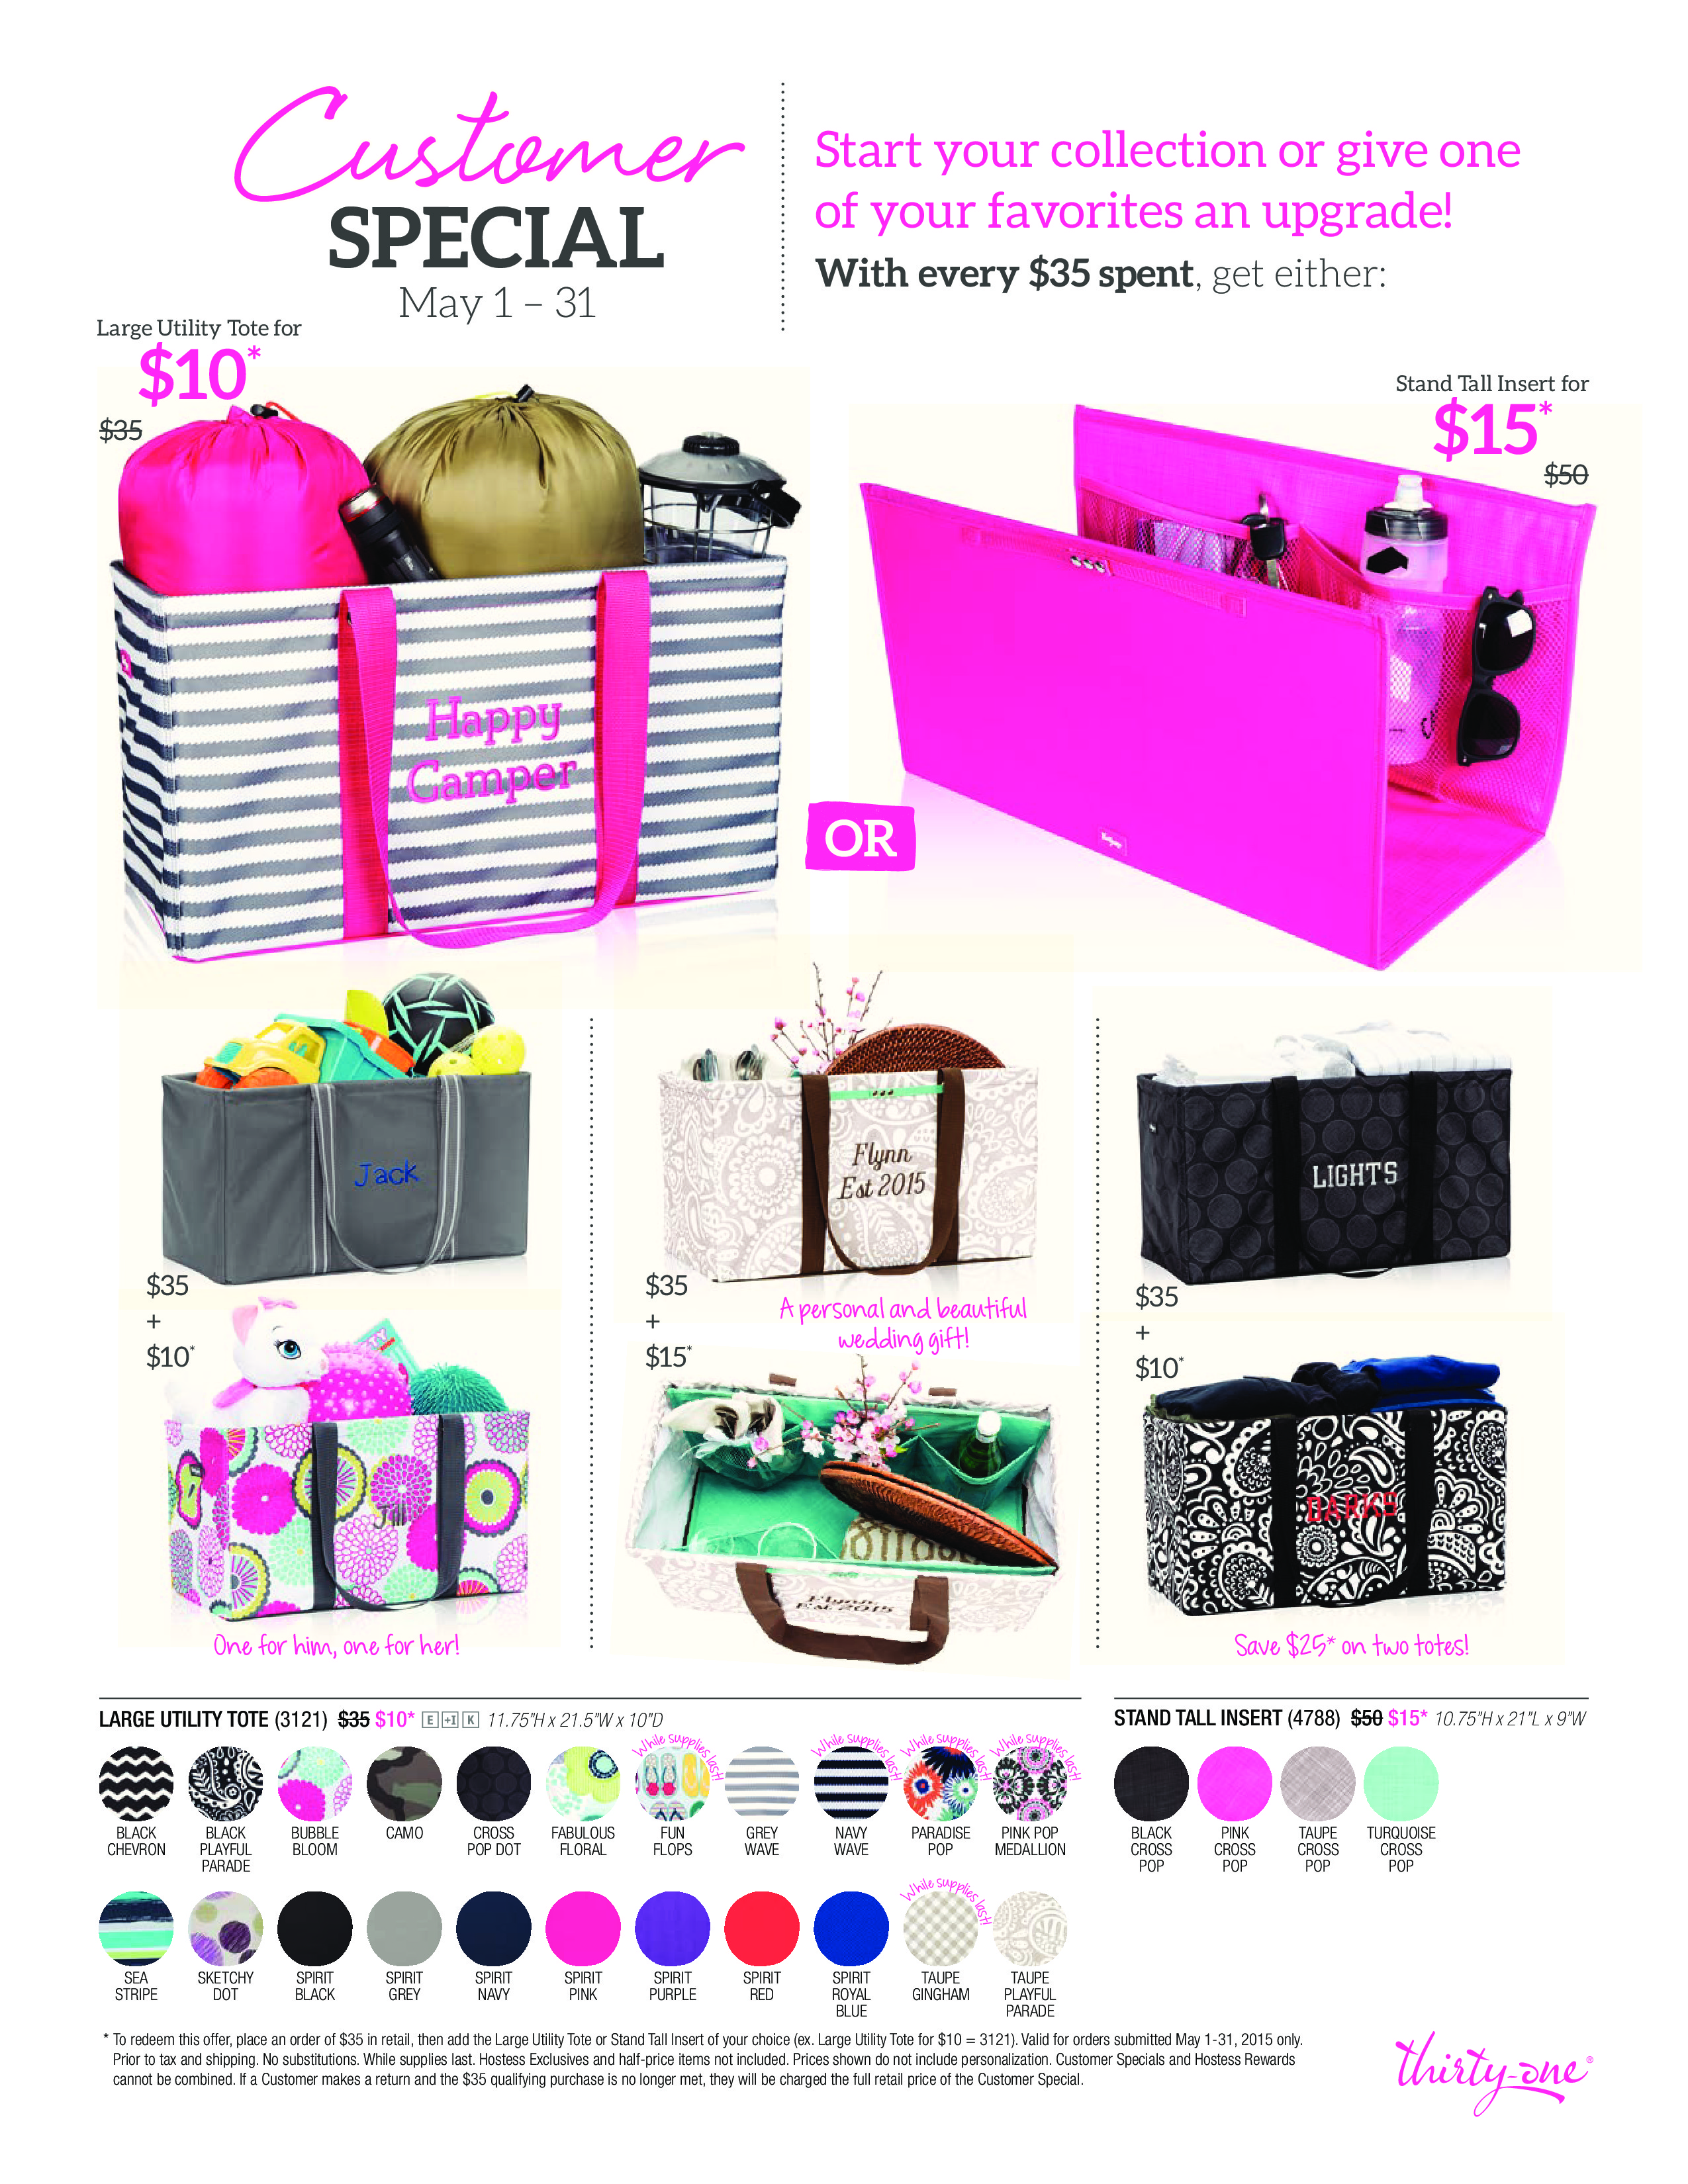 Thirty one november customer special 2014 - May Flier Page 0